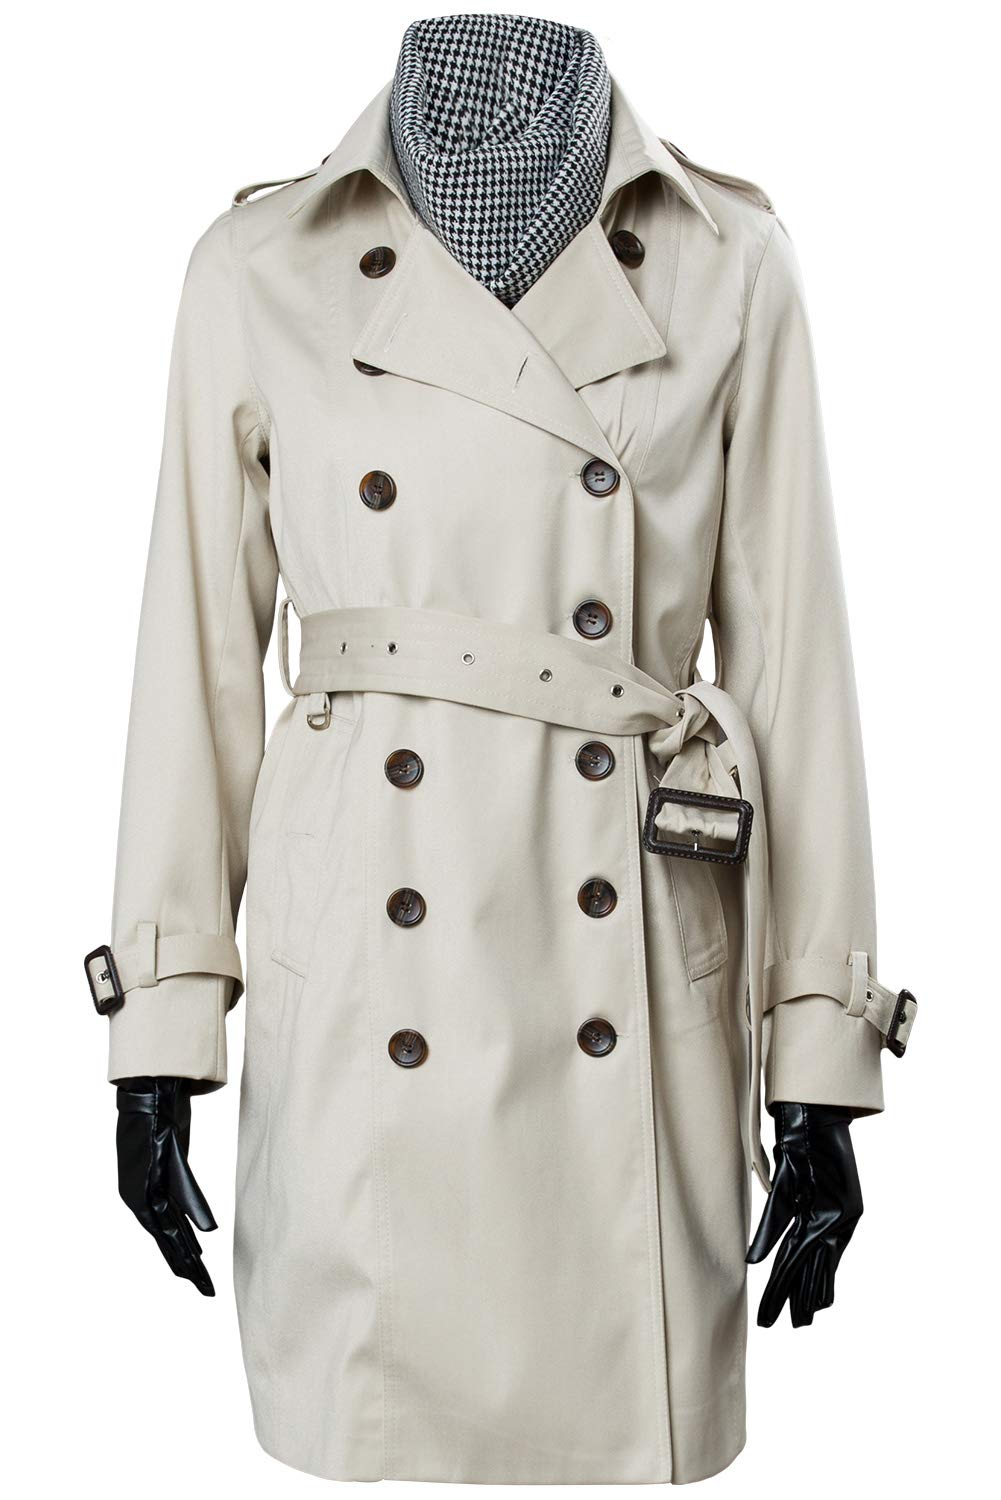 MingoTor Resident Evil 2 Remake Re Ada Wong Wang Trenchcoat + Rotes Kleid Cosplay Kostüm Damen XS Beige L